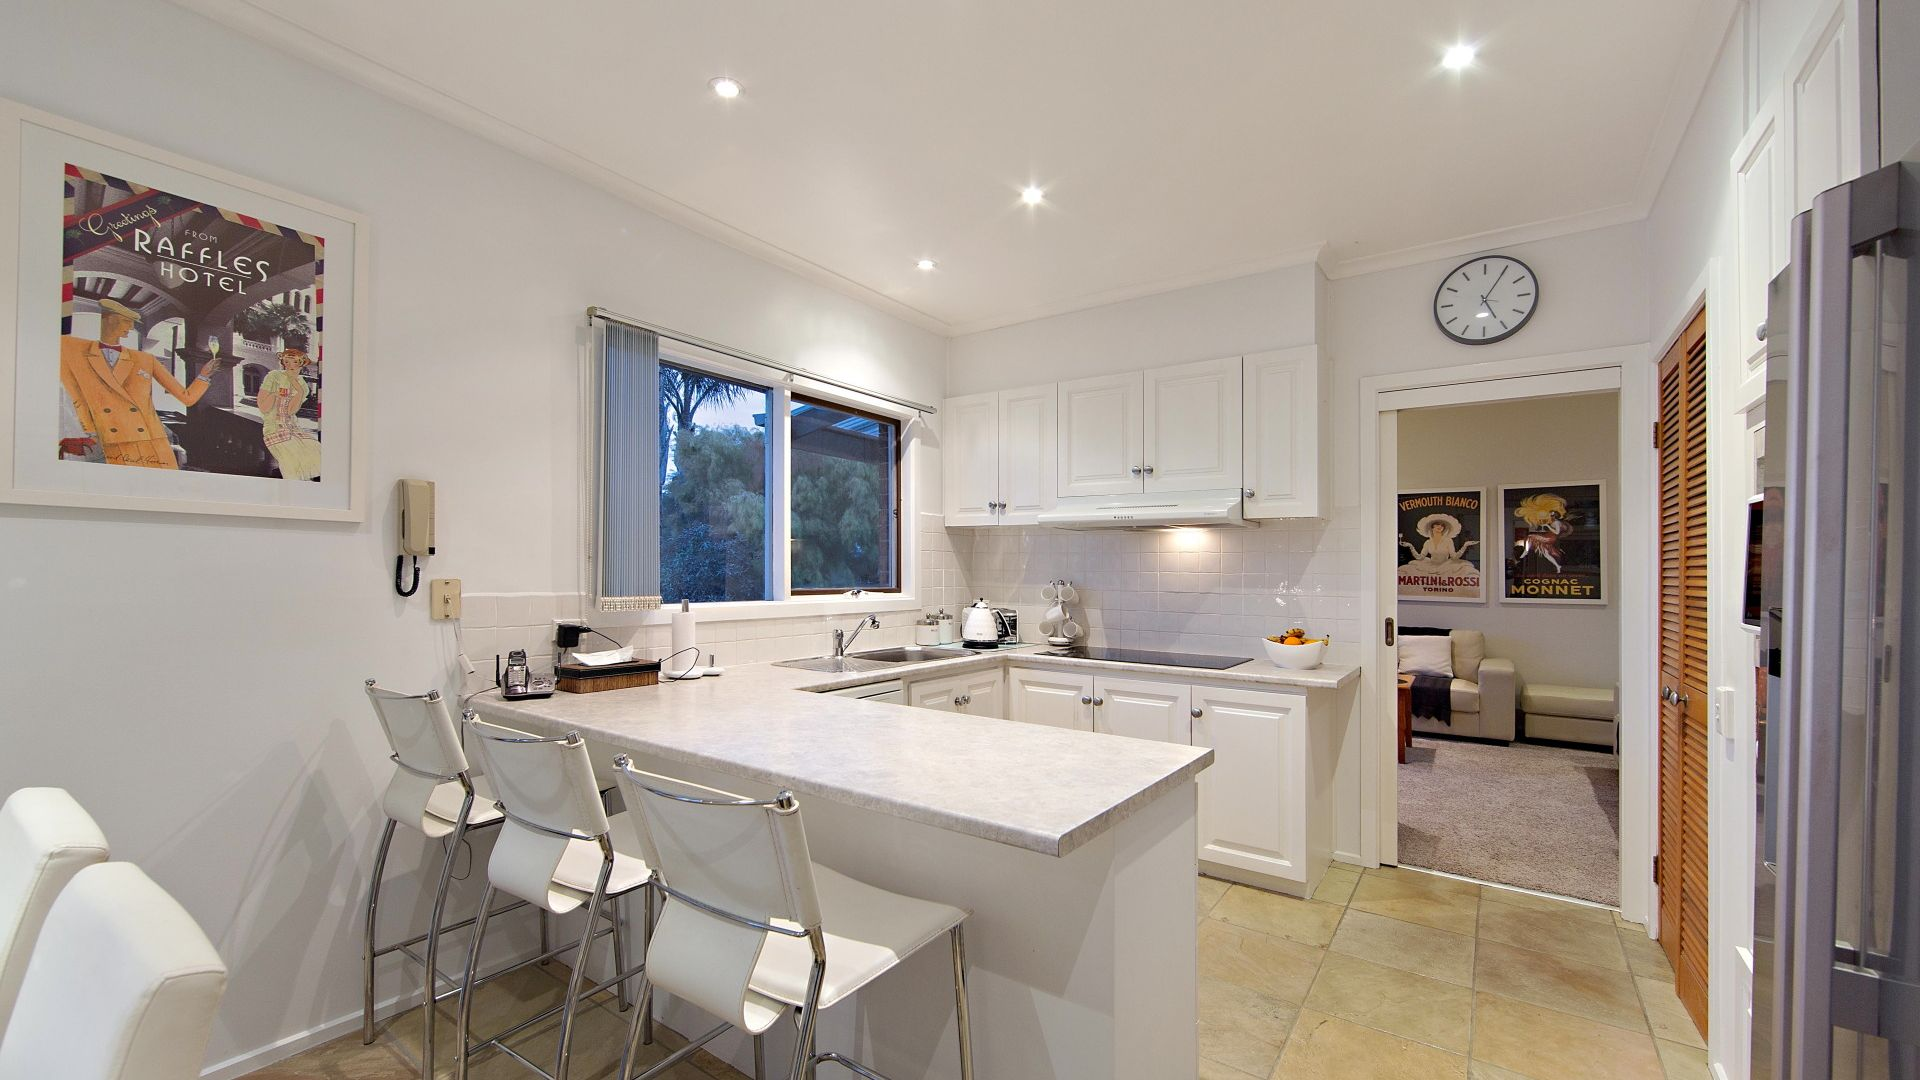 22/1 Canberra Street, Patterson Lakes VIC 3197, Image 2